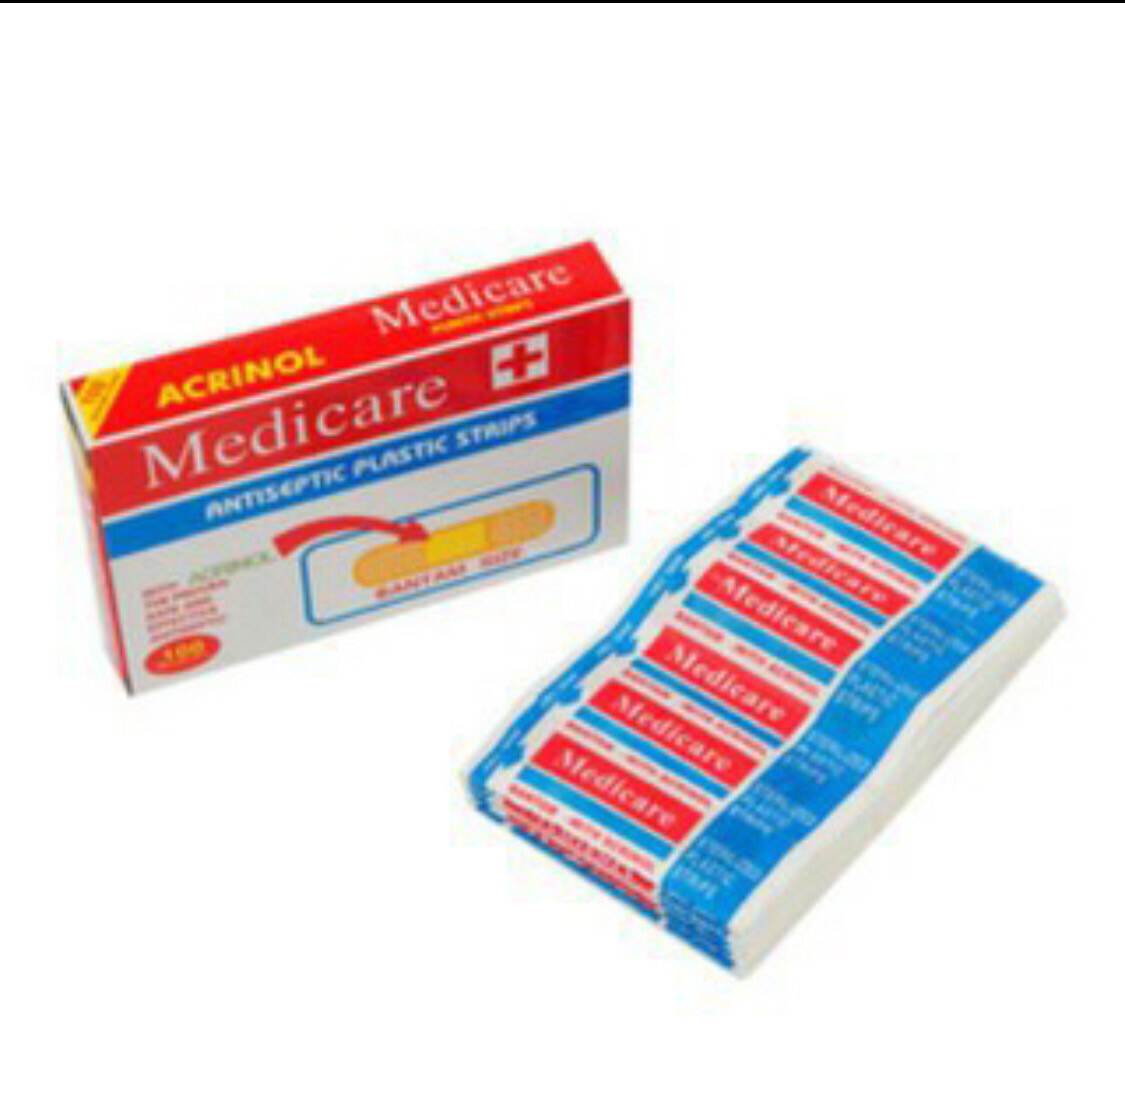 Medicare Antiseptic Plastic Band Aid Strips Box of 100's